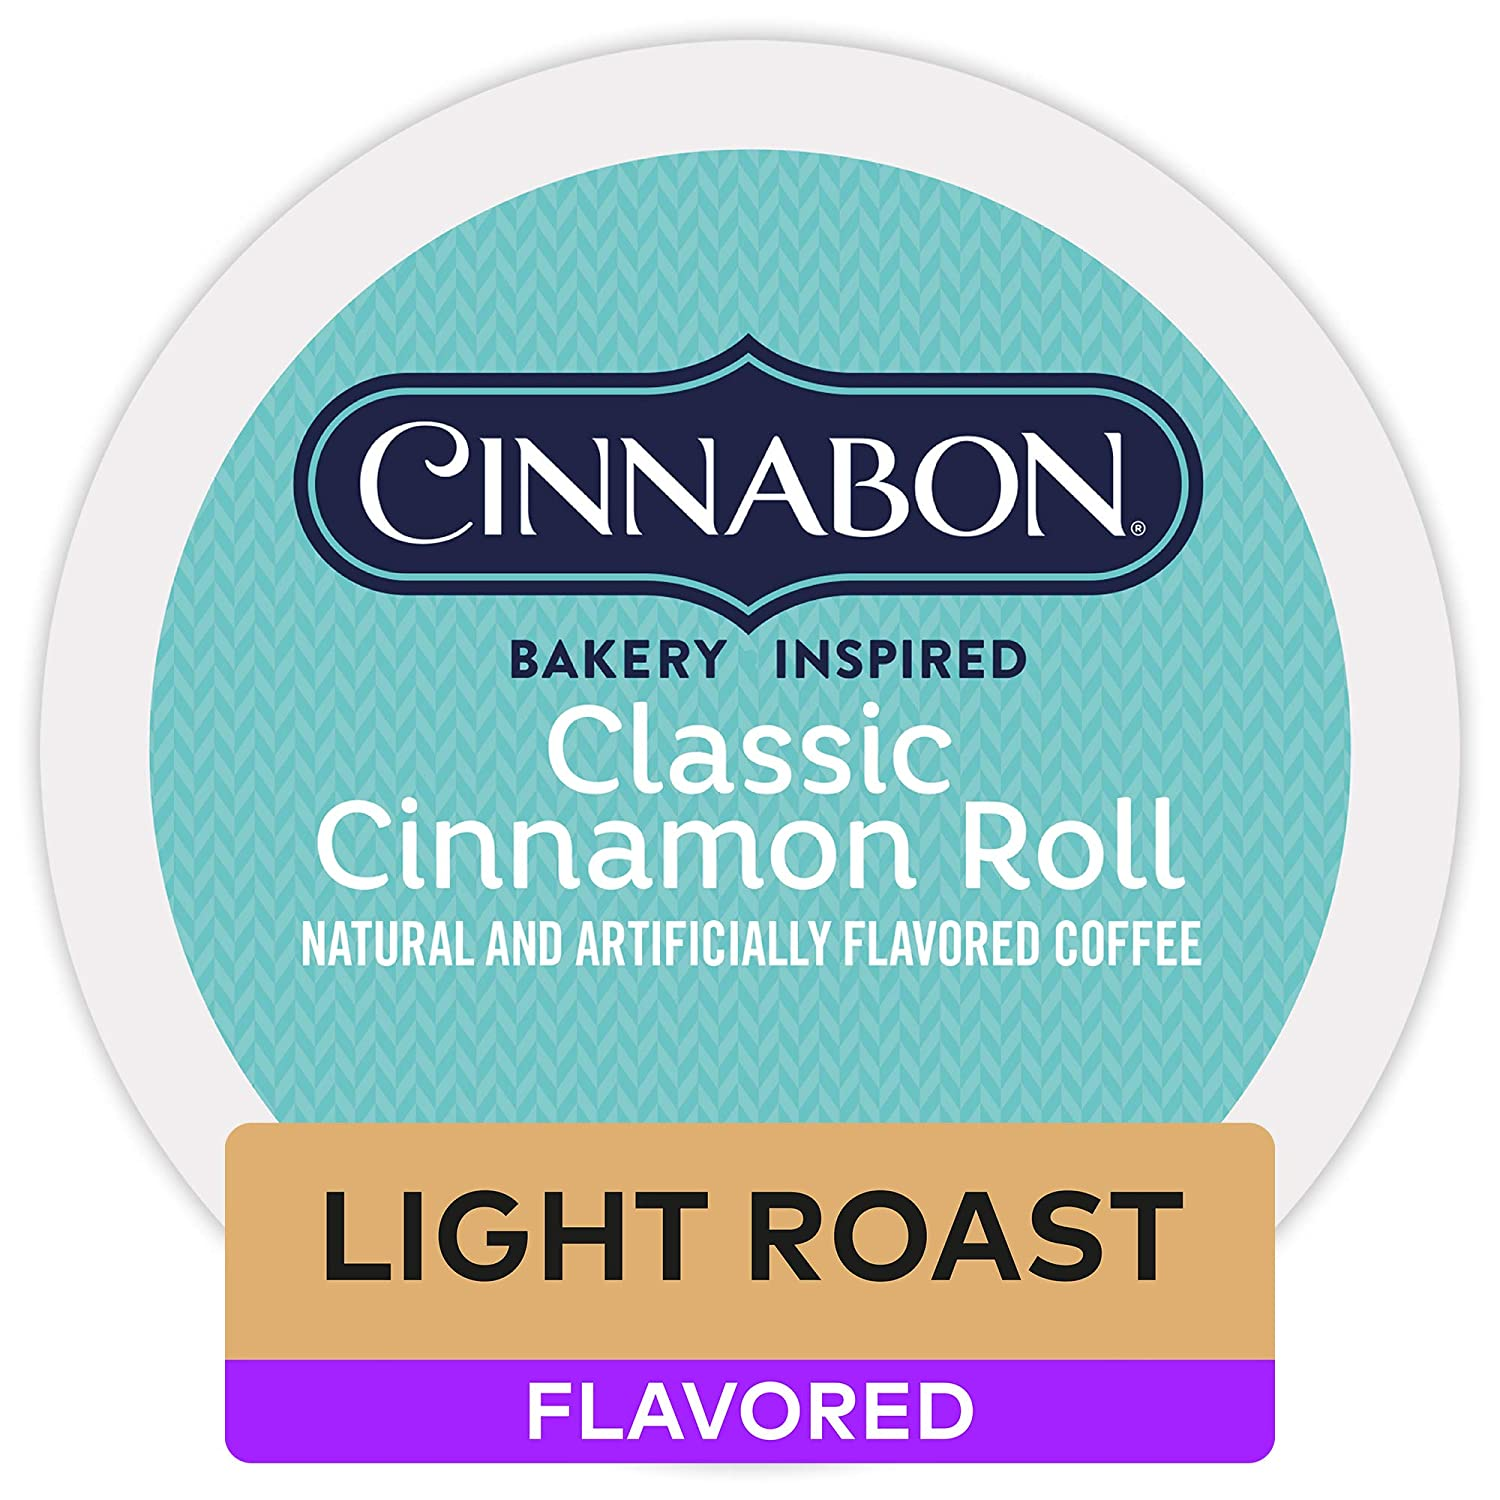 Cinnabon Classic Cinnamon Roll Keurig Single-Serve K-Cup Pods, Light Roast Coffee, 12 Count (Pack of 1)